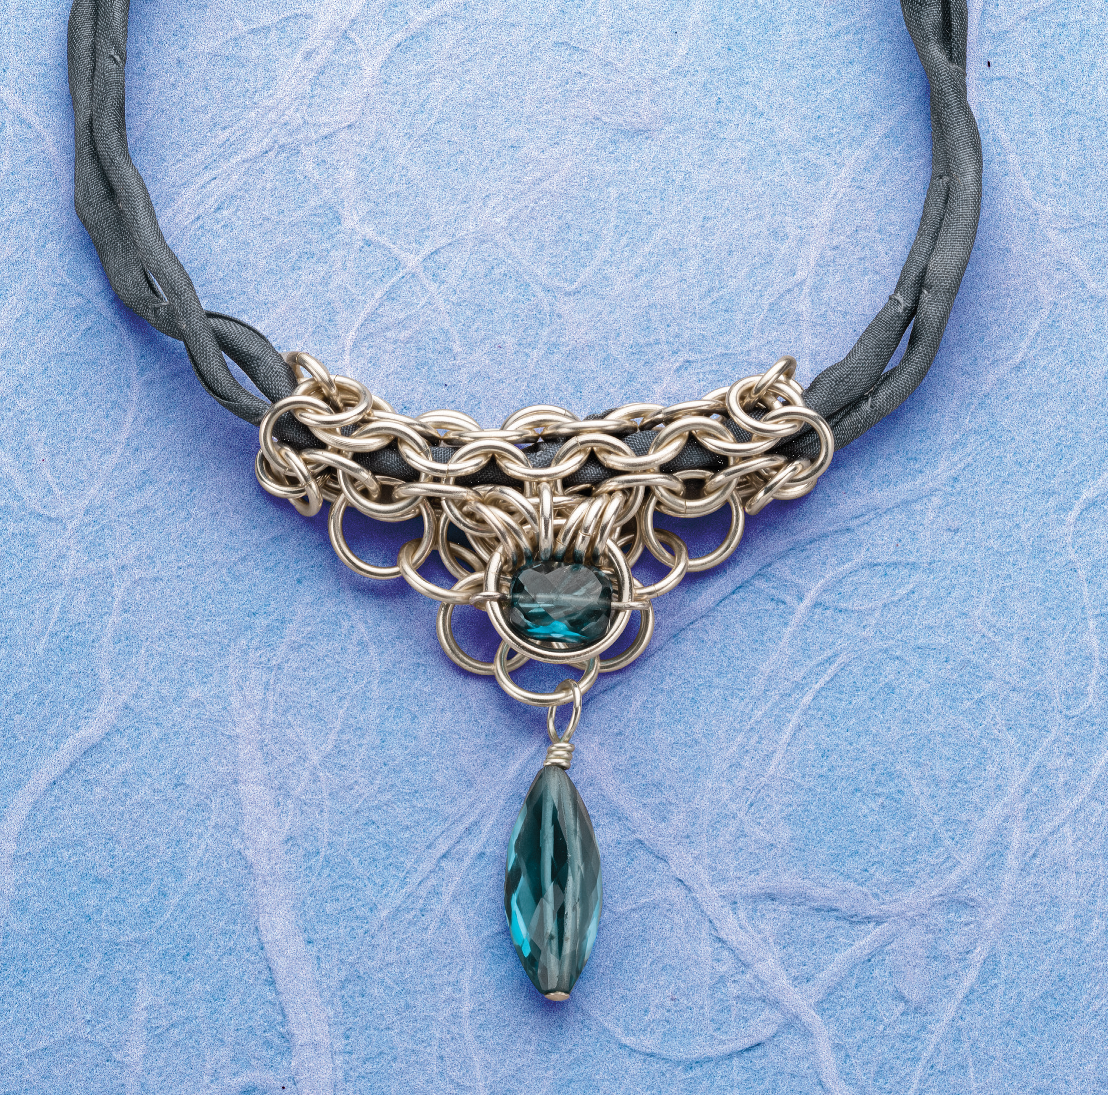 Kylie Jones draws on interest in fashion and a fascination with the patterns that can be created by linking rings. She also frequently shares her patterns and explains her process with others, including this Celebrate Blue topaz chain maille necklace project in Lapidary Journal Jewelry Artist May/June 2019. Photo: Jim Lawson